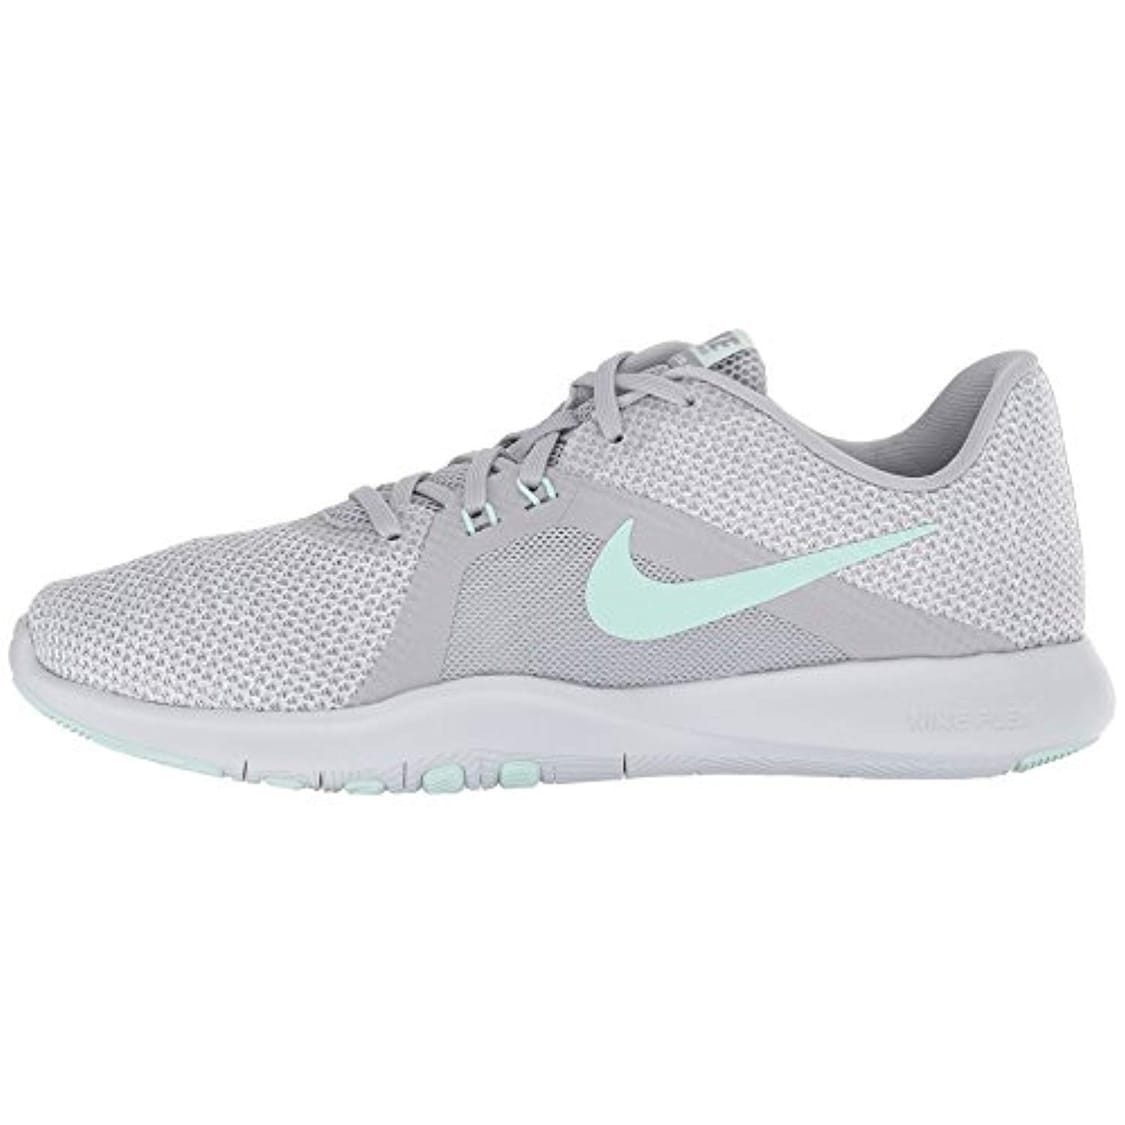 0a9f433a5ac2a Shop Nike Womens Flex Tr 8 Wide Wolf Grey Igloo White Platinum Size 9.5 -  Free Shipping Today - Overstock.com - 25670702